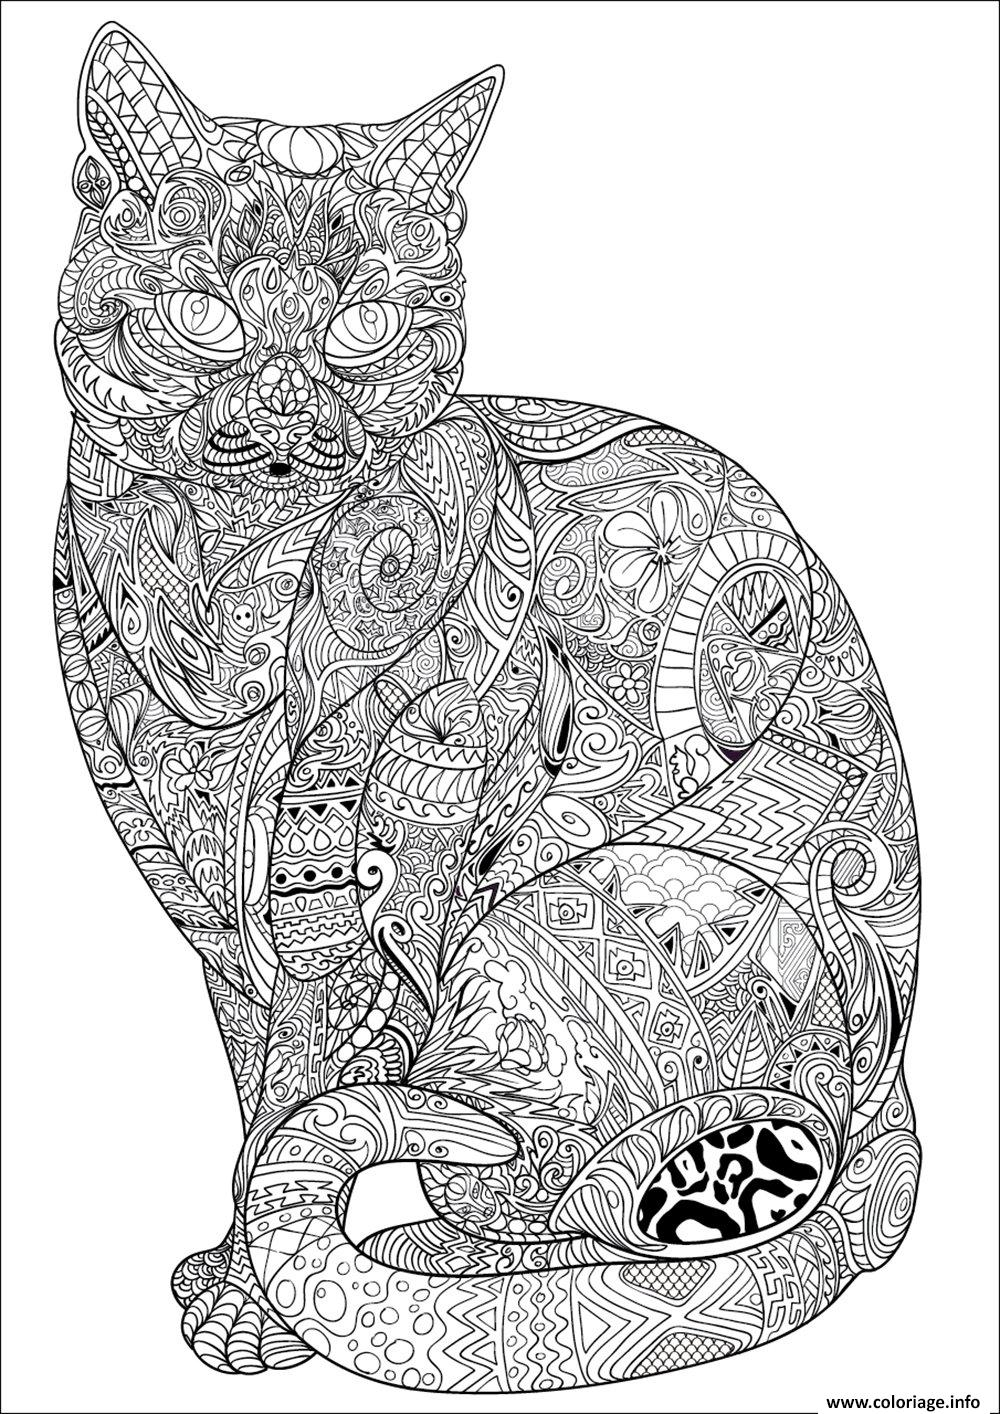 Coloriage Adulte A Imprimer Chat